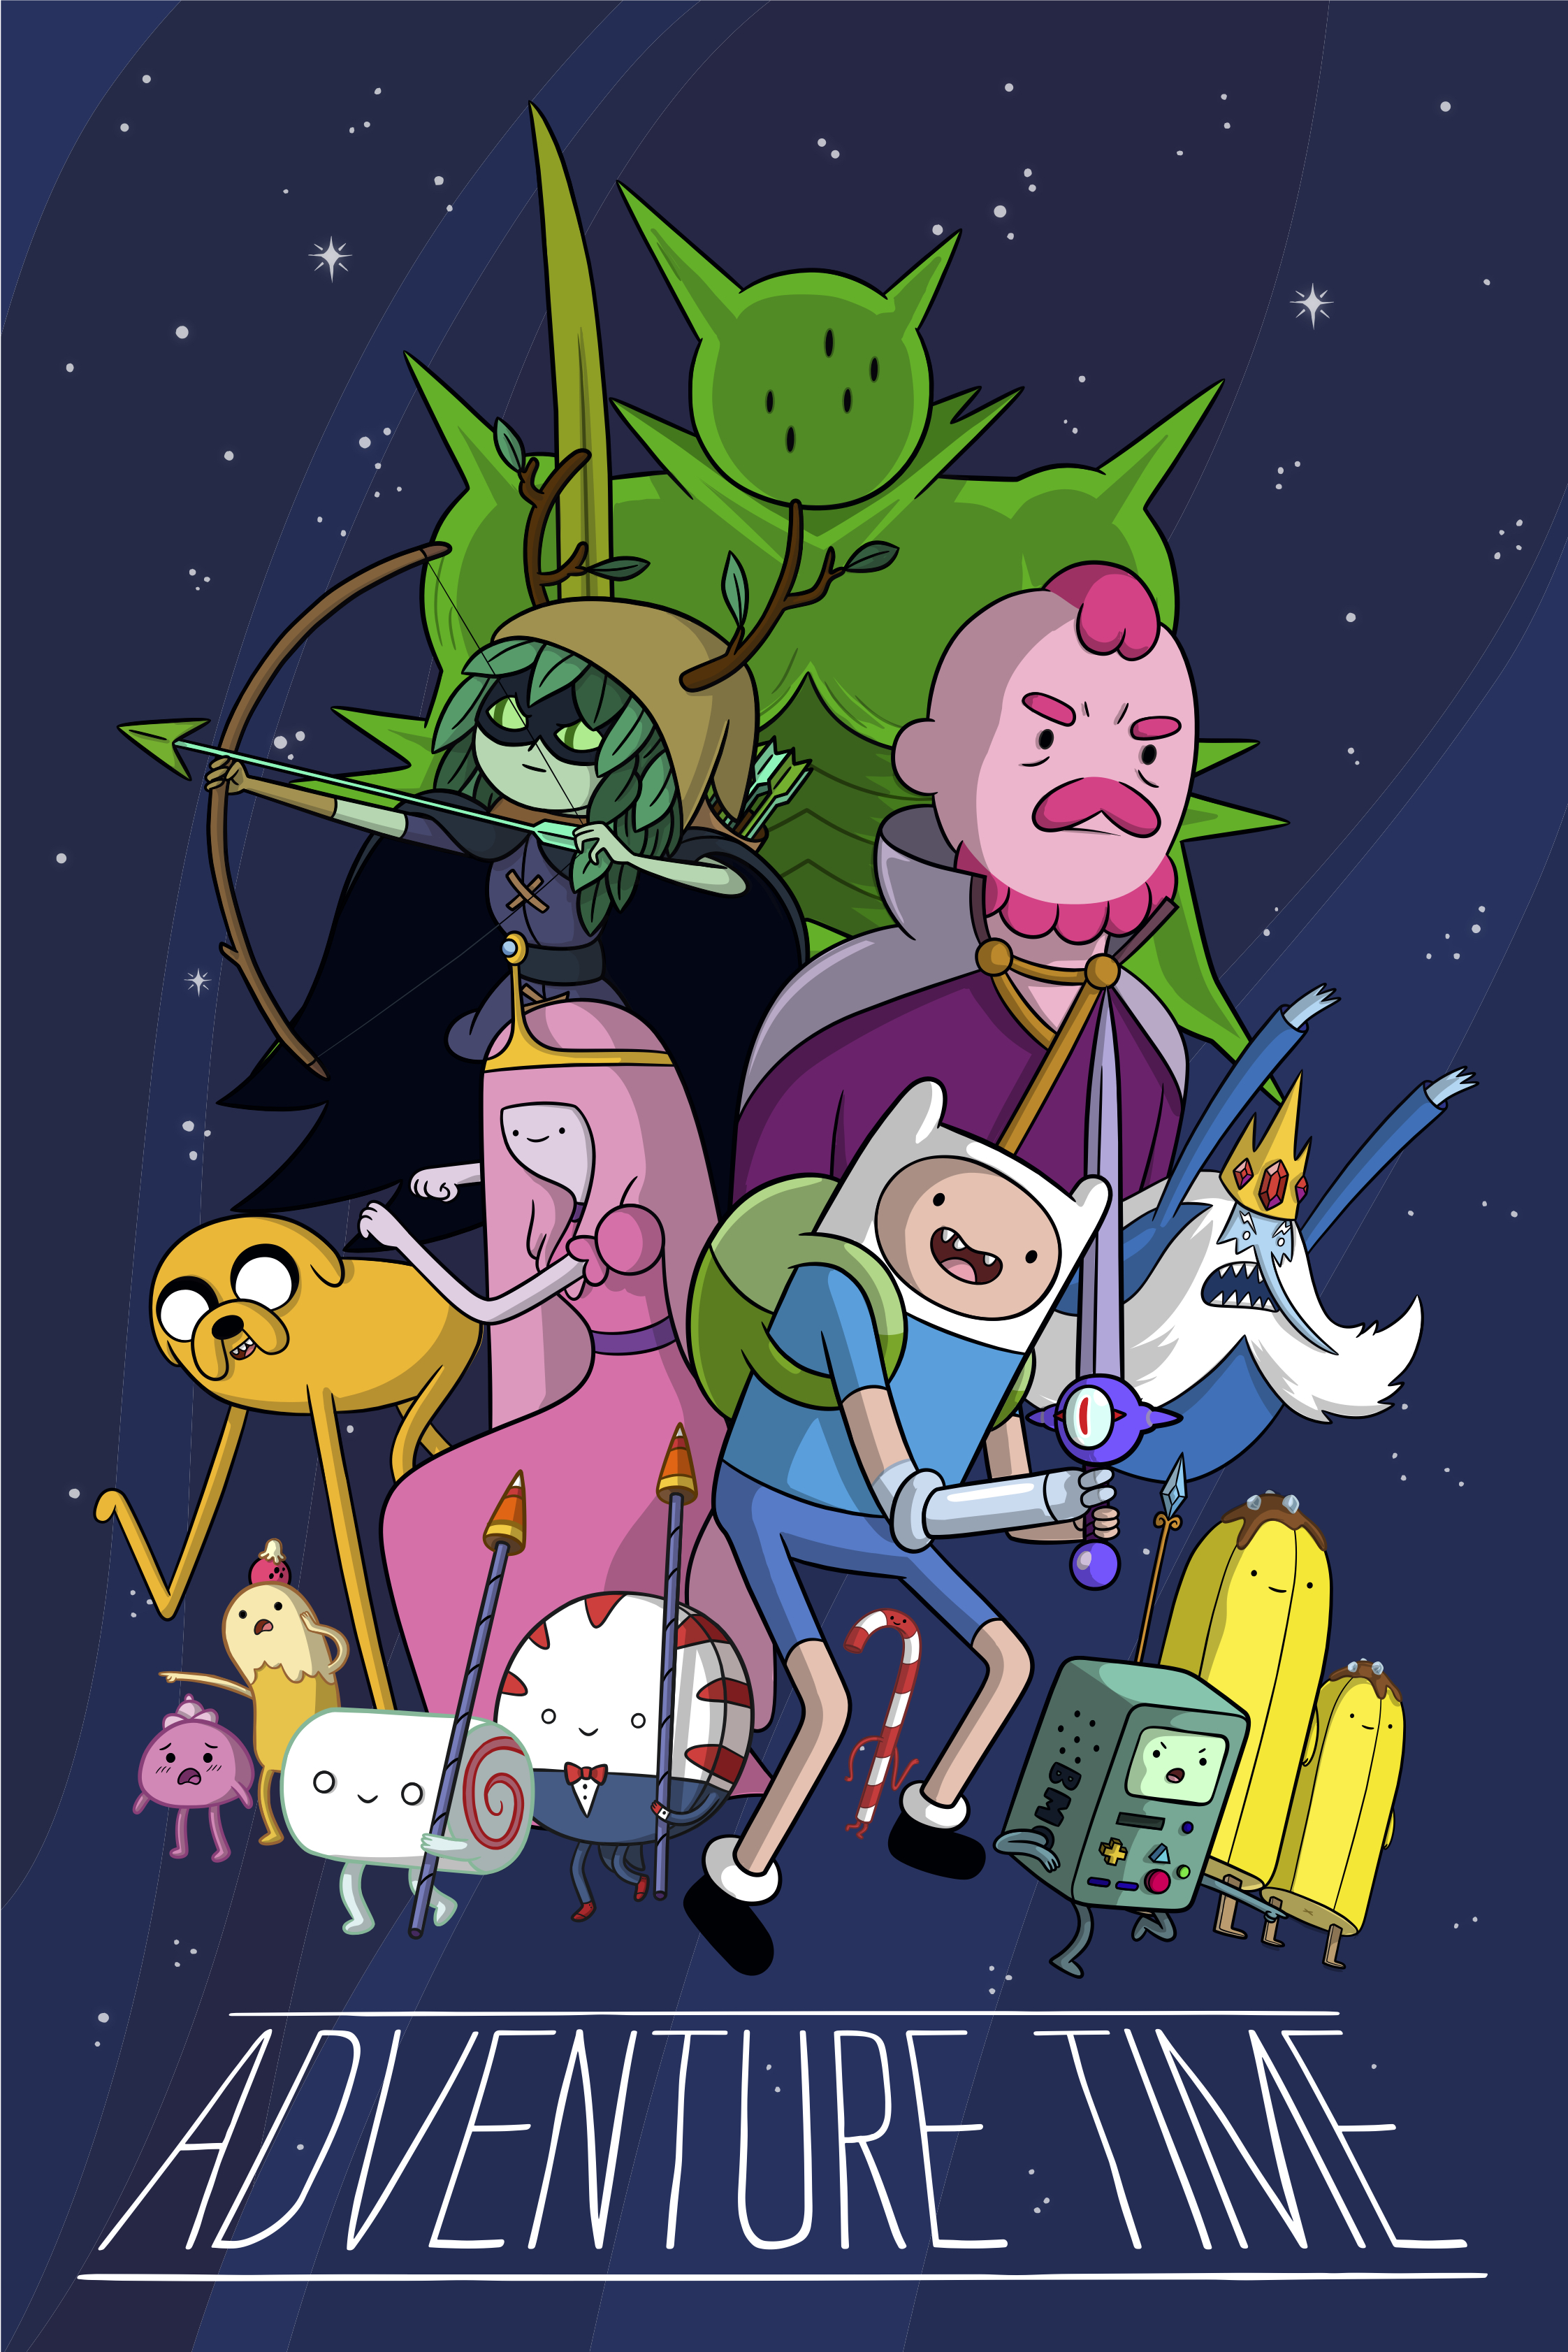 carte si album cu melodiile din adventure time #cartoonnetwork Carte si album cu melodiile din Adventure Time #CartoonNetwork S   nceap   aventura    Cartoon Network